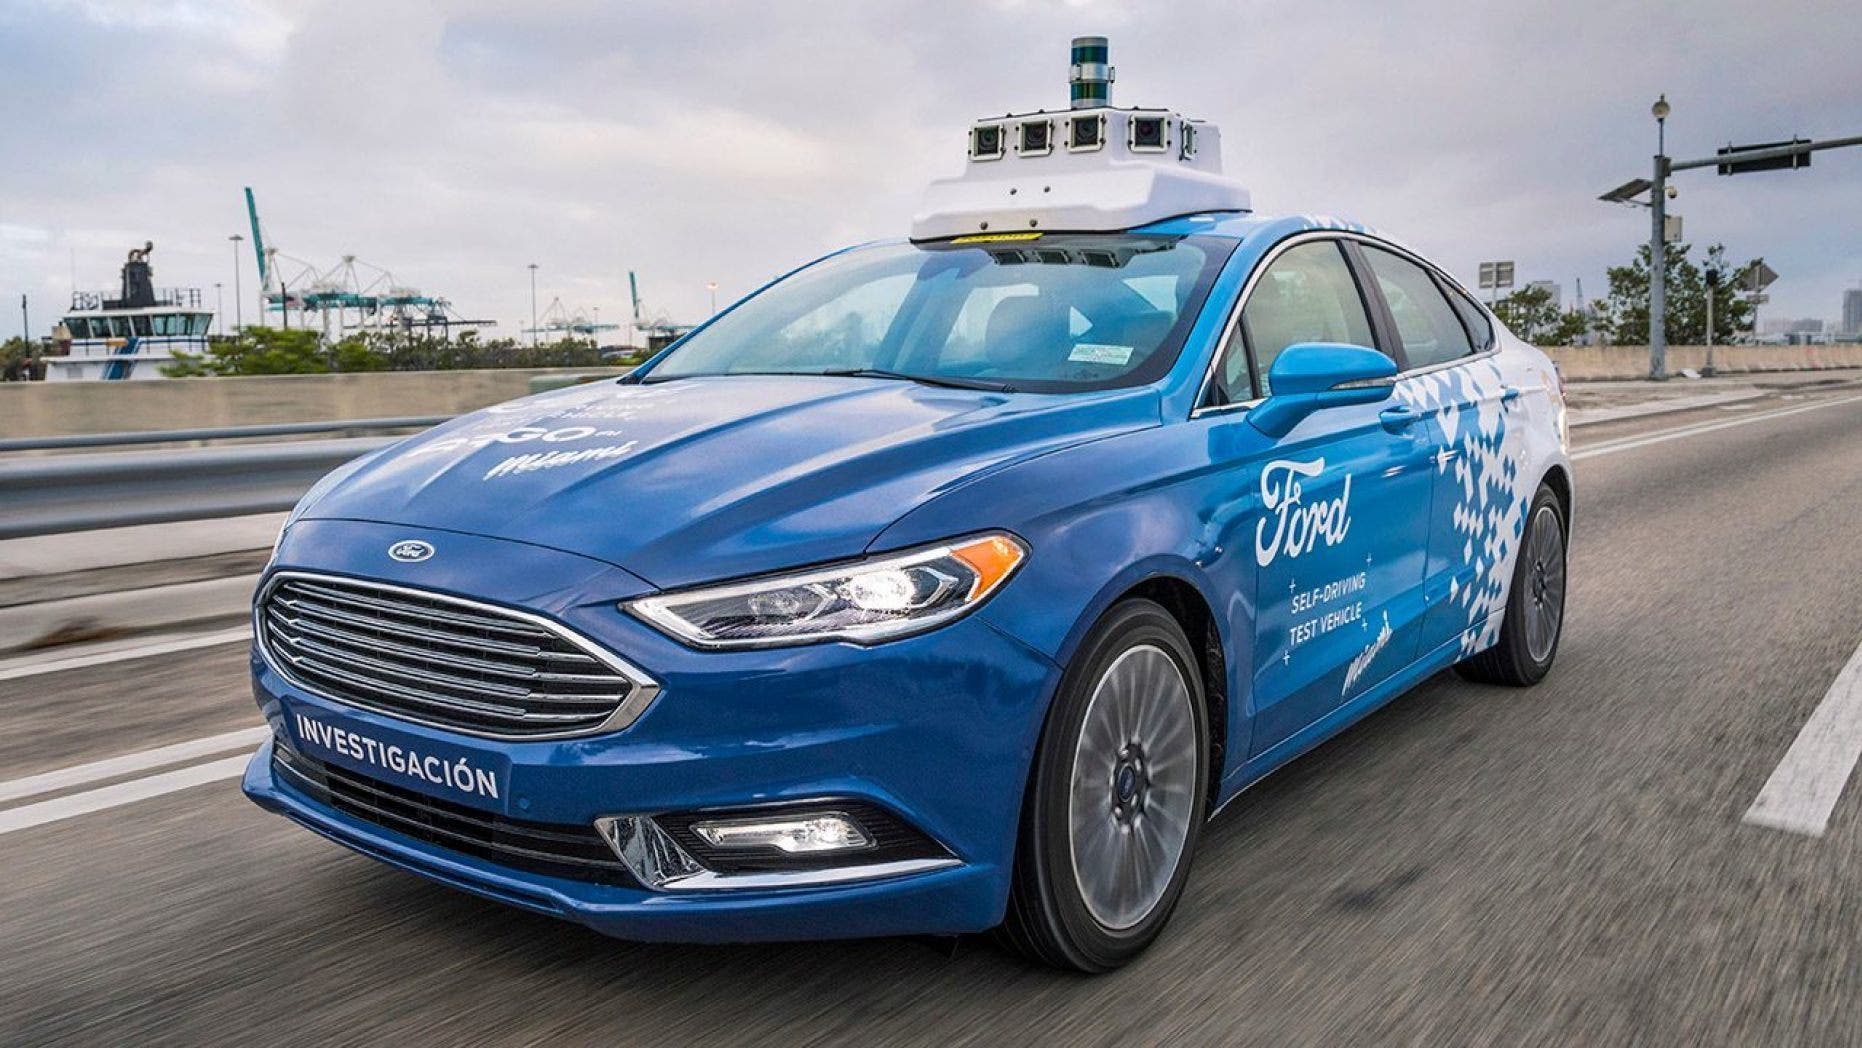 Ford will build its first driverless cars in MI in 2021